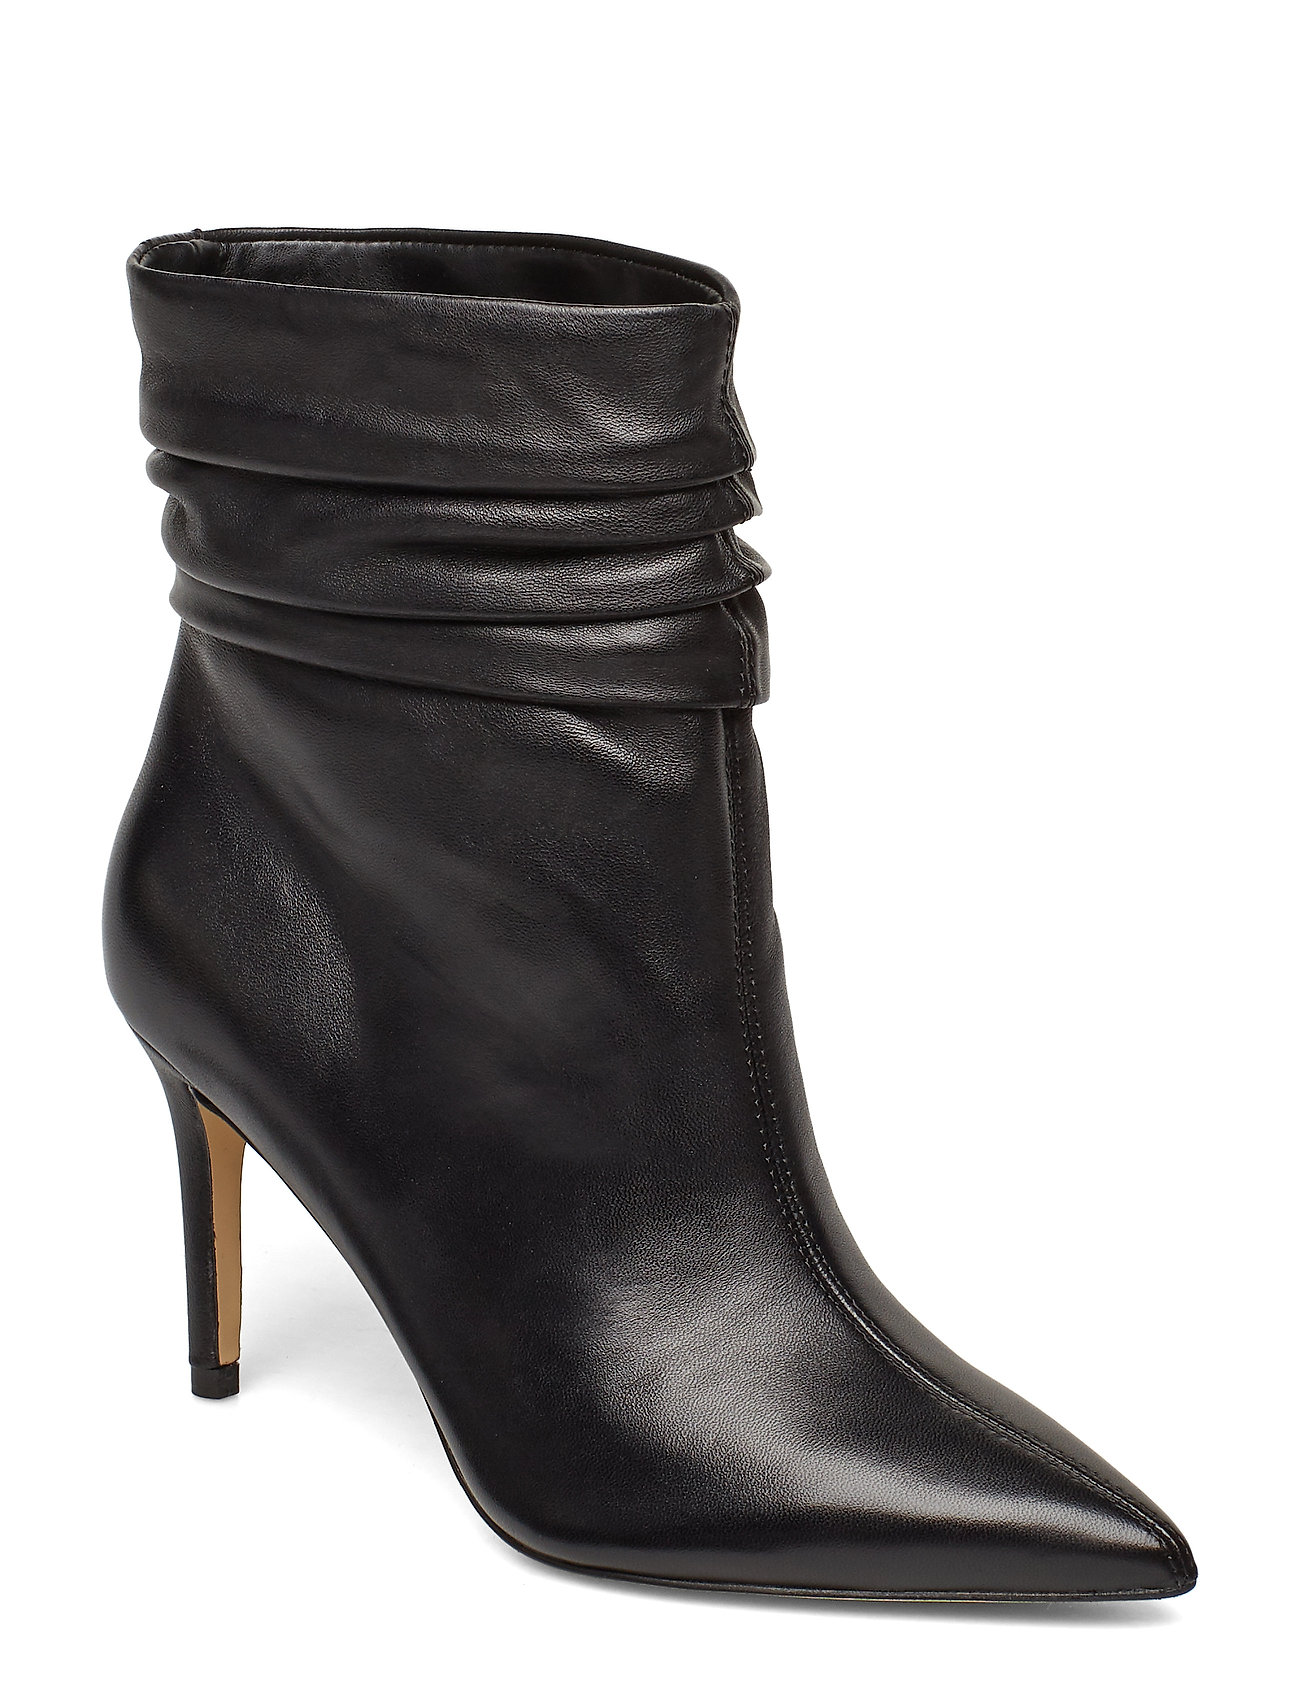 new product 0aeaf 3662e BEWELL/STIVALETTO (BOOTIE)/LEA